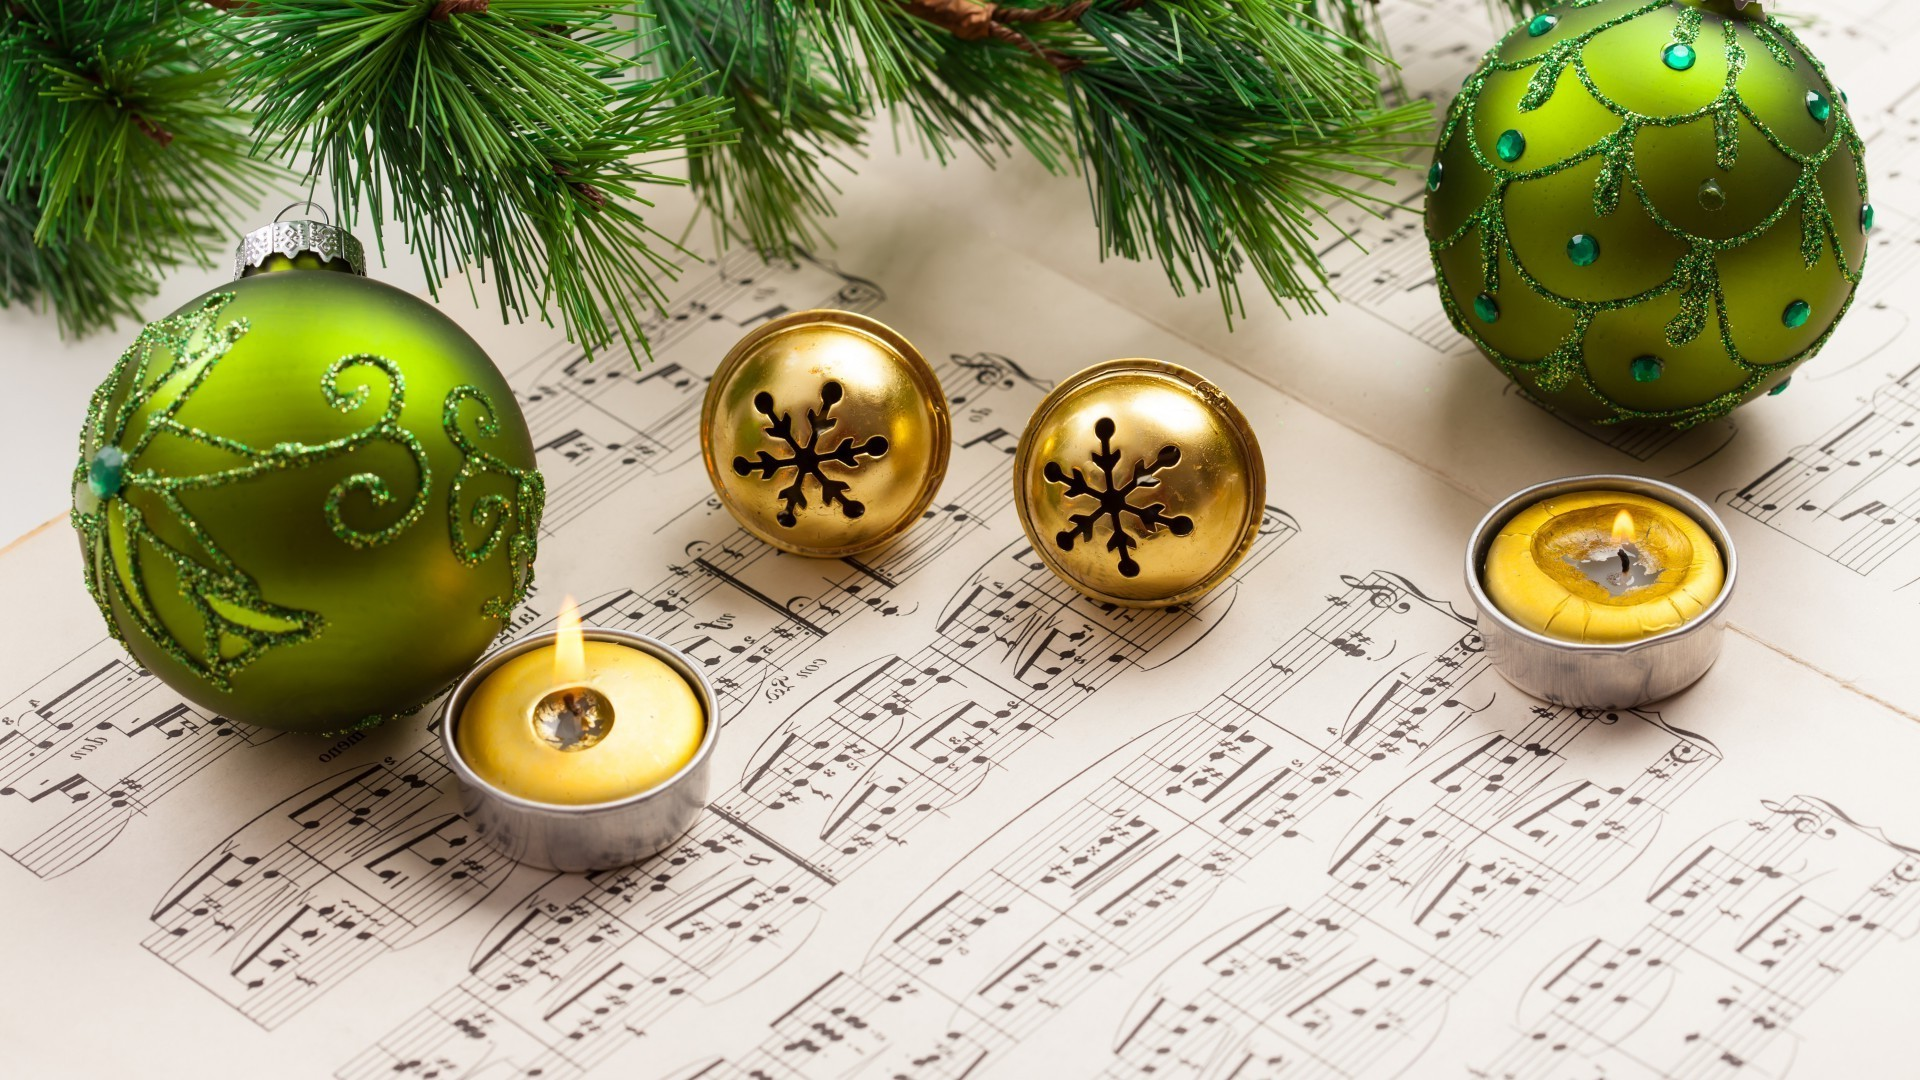 new year christmas ball celebration winter decoration sphere season easter traditional gold desktop card color shining bright thread bangle bow merry